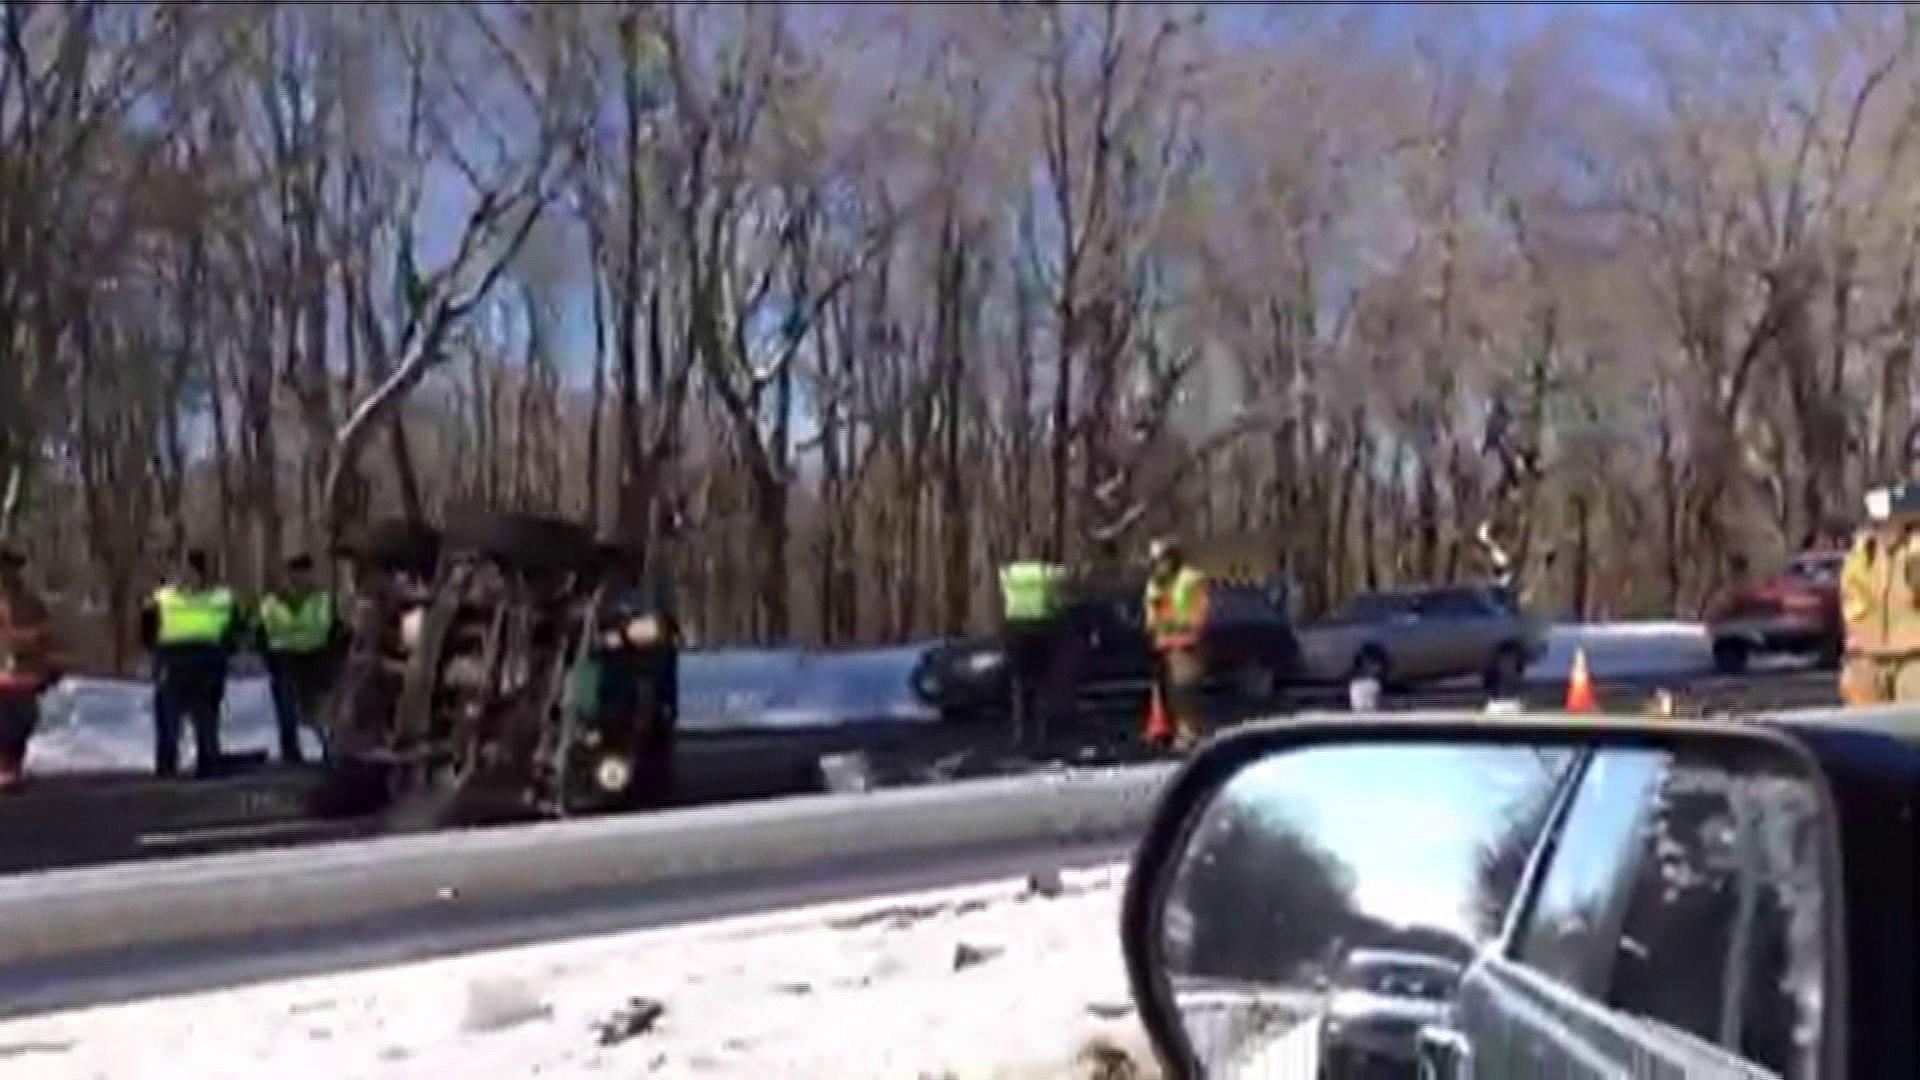 A 7-year-old boy was killed in this rollover crash on Route 15 in Wallingford on Friday afternoon.